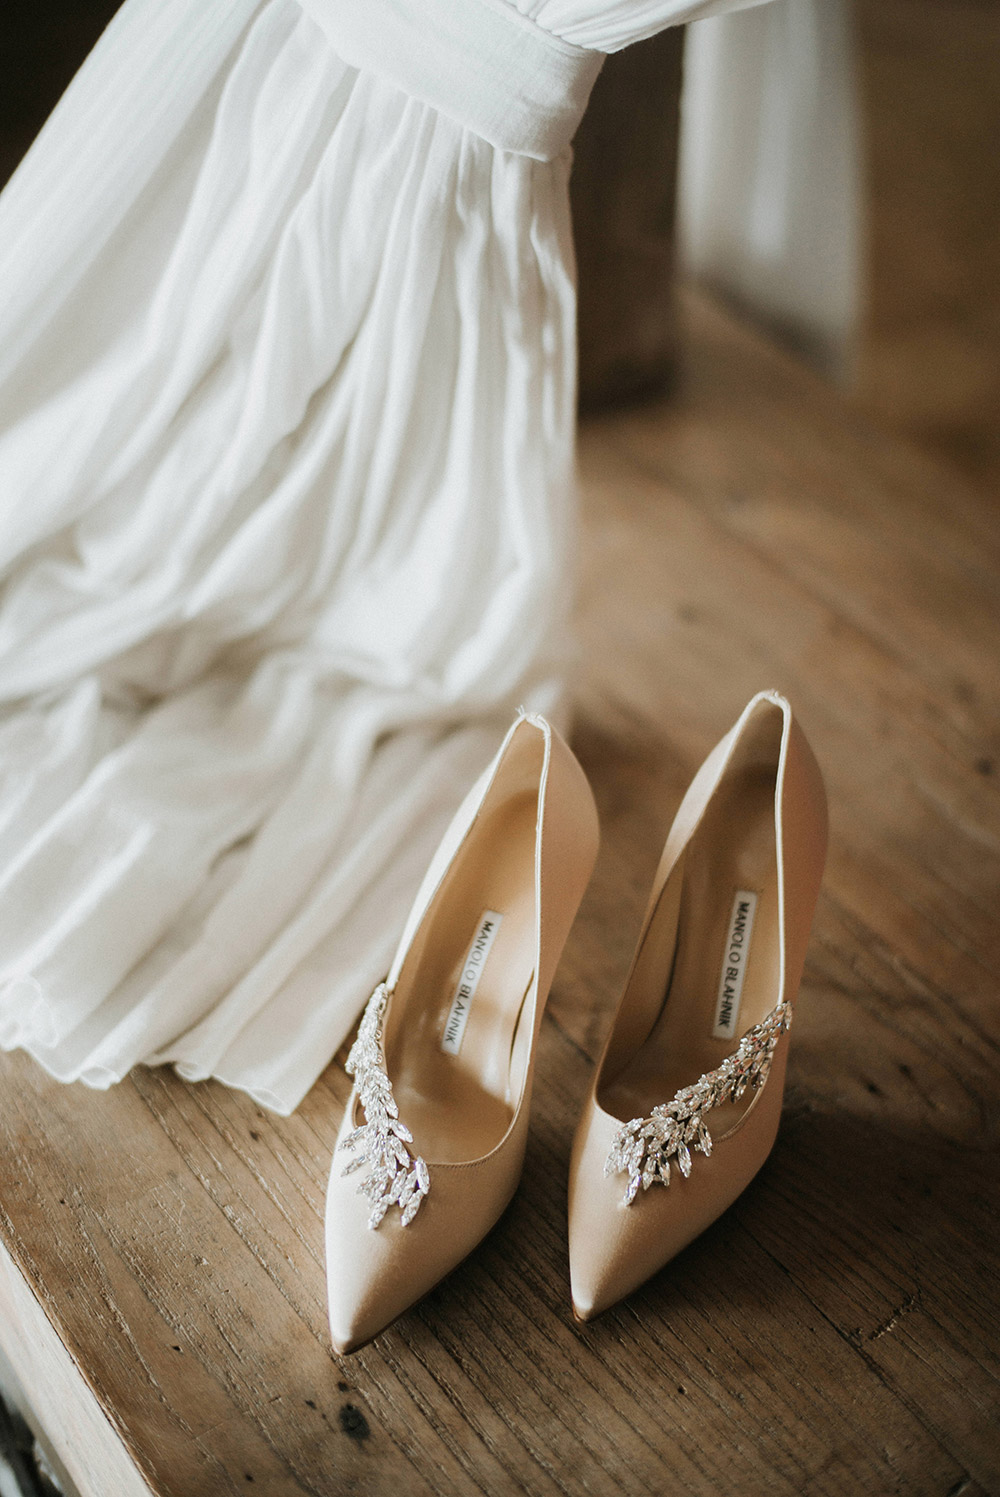 Bridal shoes by Manolo Blahnik. Photo by Iluminen. www.theweddingnotebook.com